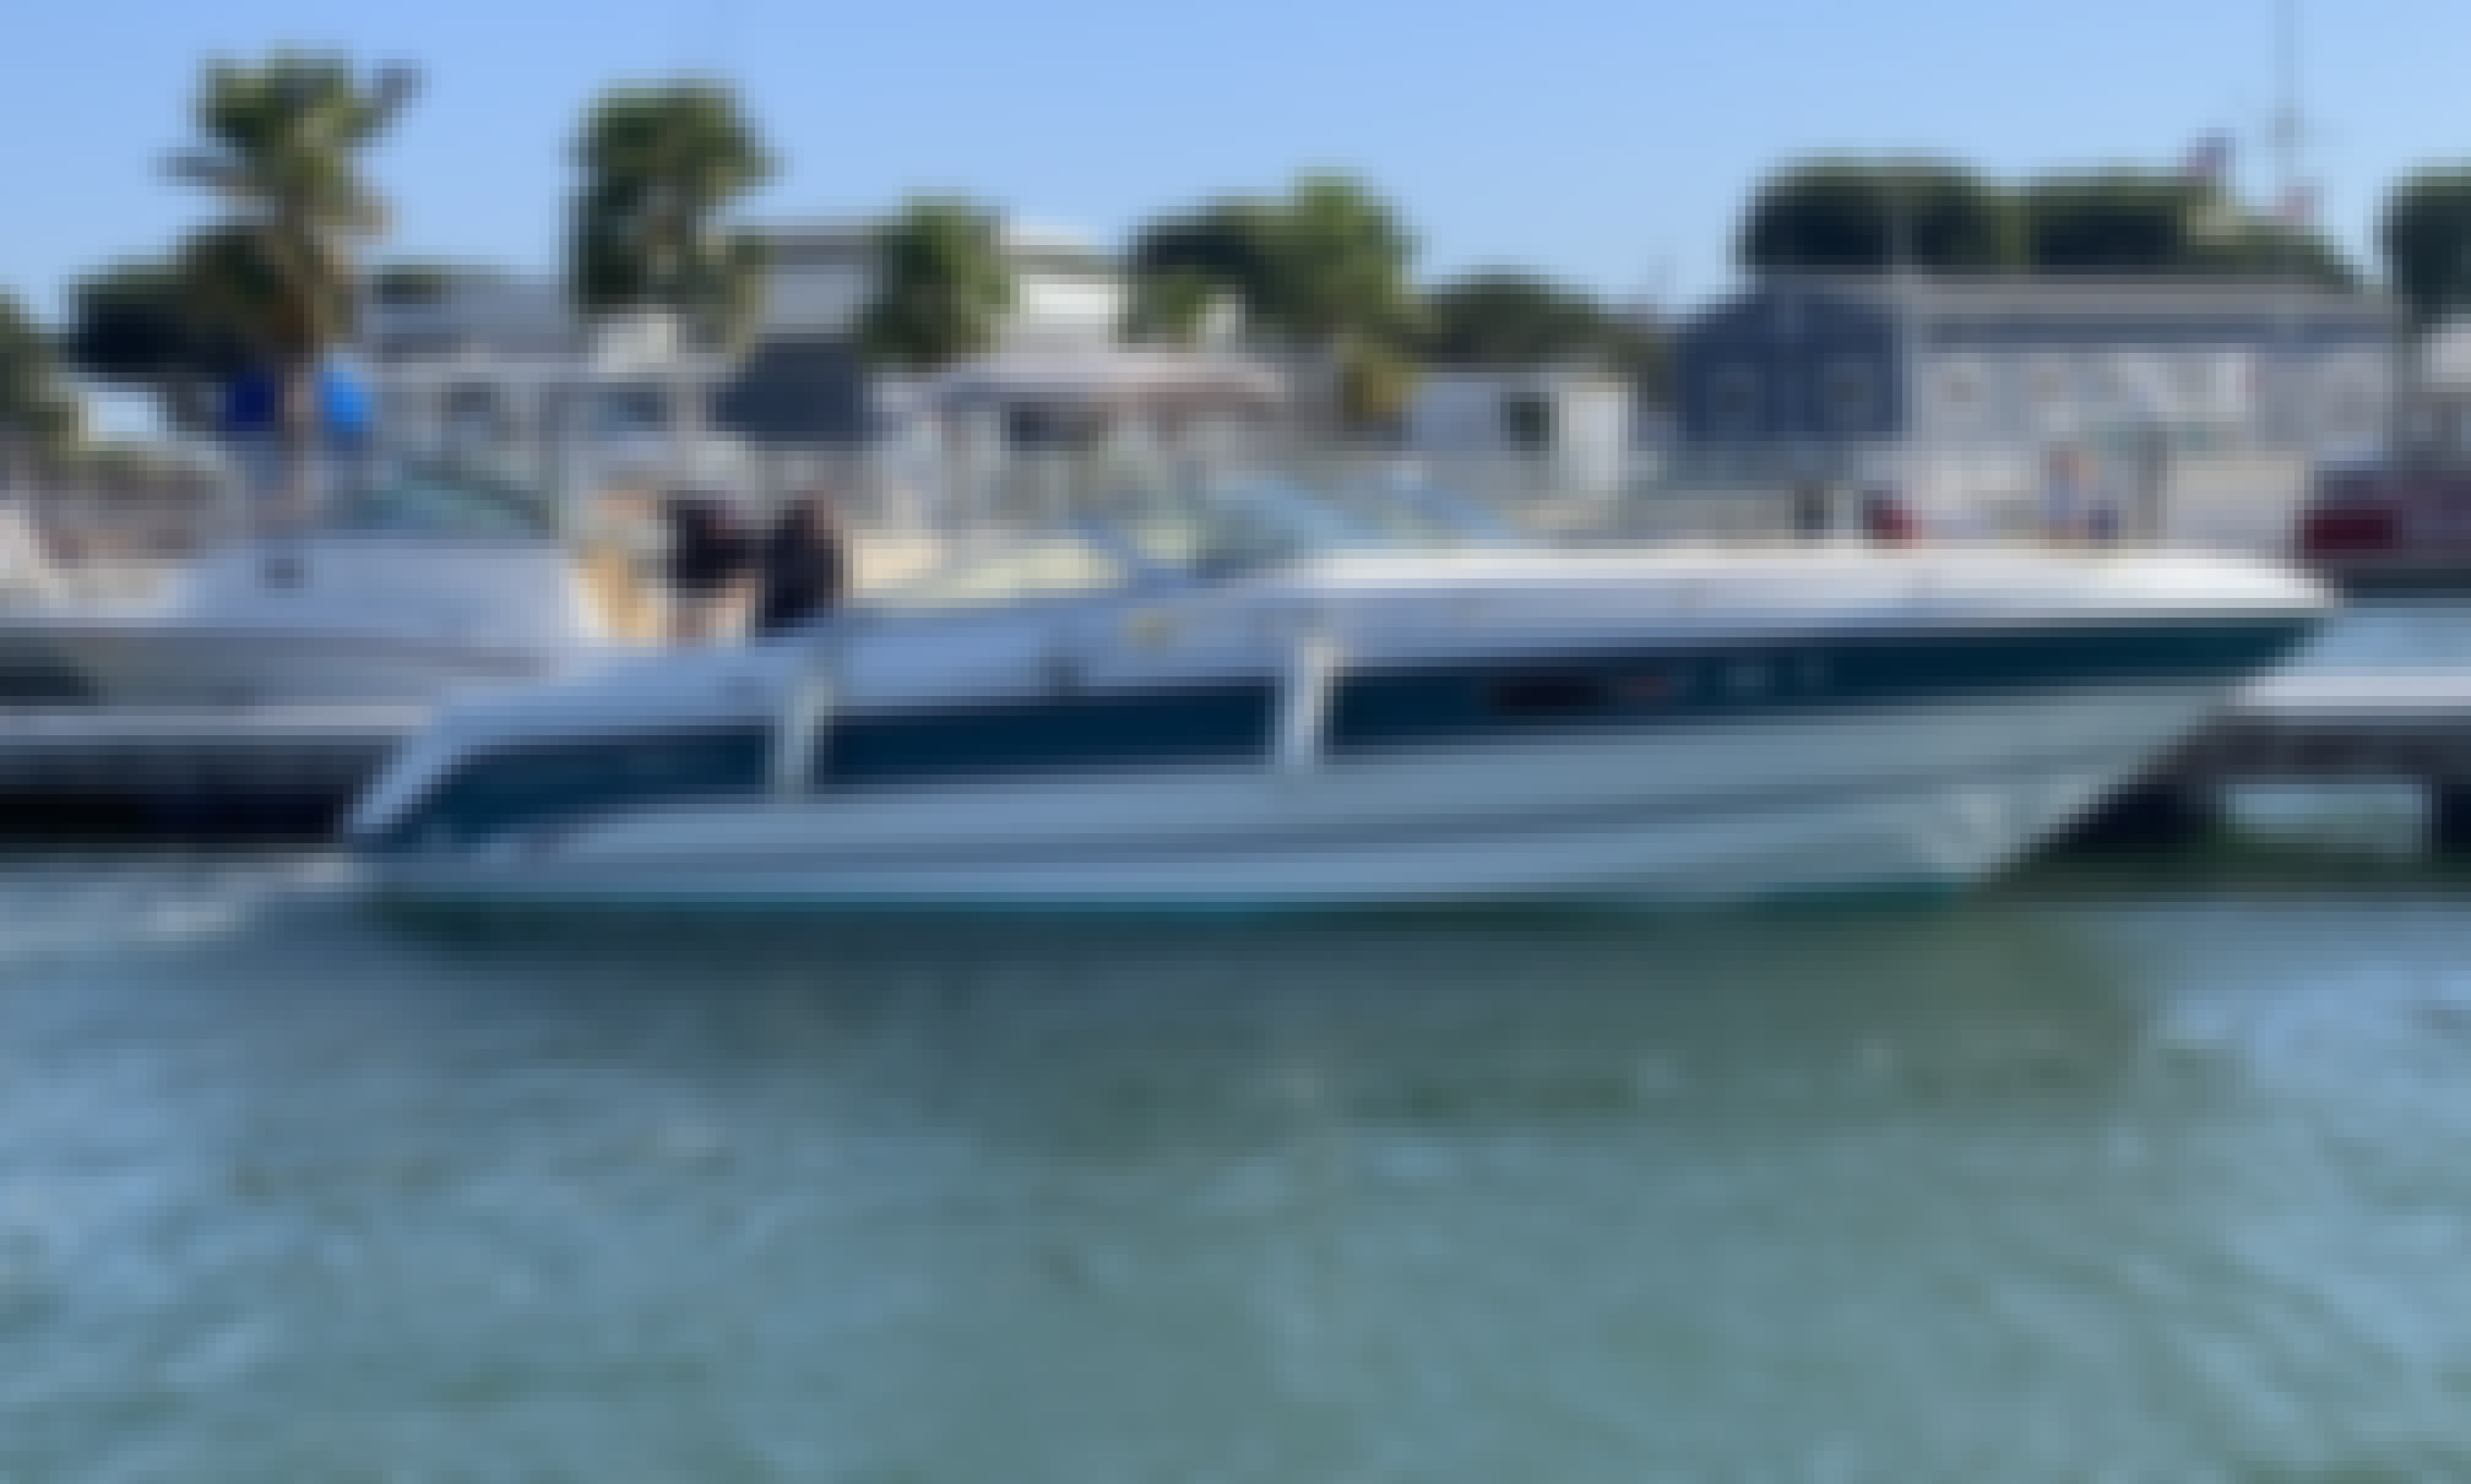 $𝟏𝟕𝟓 🅿🅴🆁 🅷🅾🆄🆁 MIN 3 HRS Chaparral 2550SX Motor Yacht Rental in Newport Beach California ( oct 31 & nov 1 ) Special ask for details